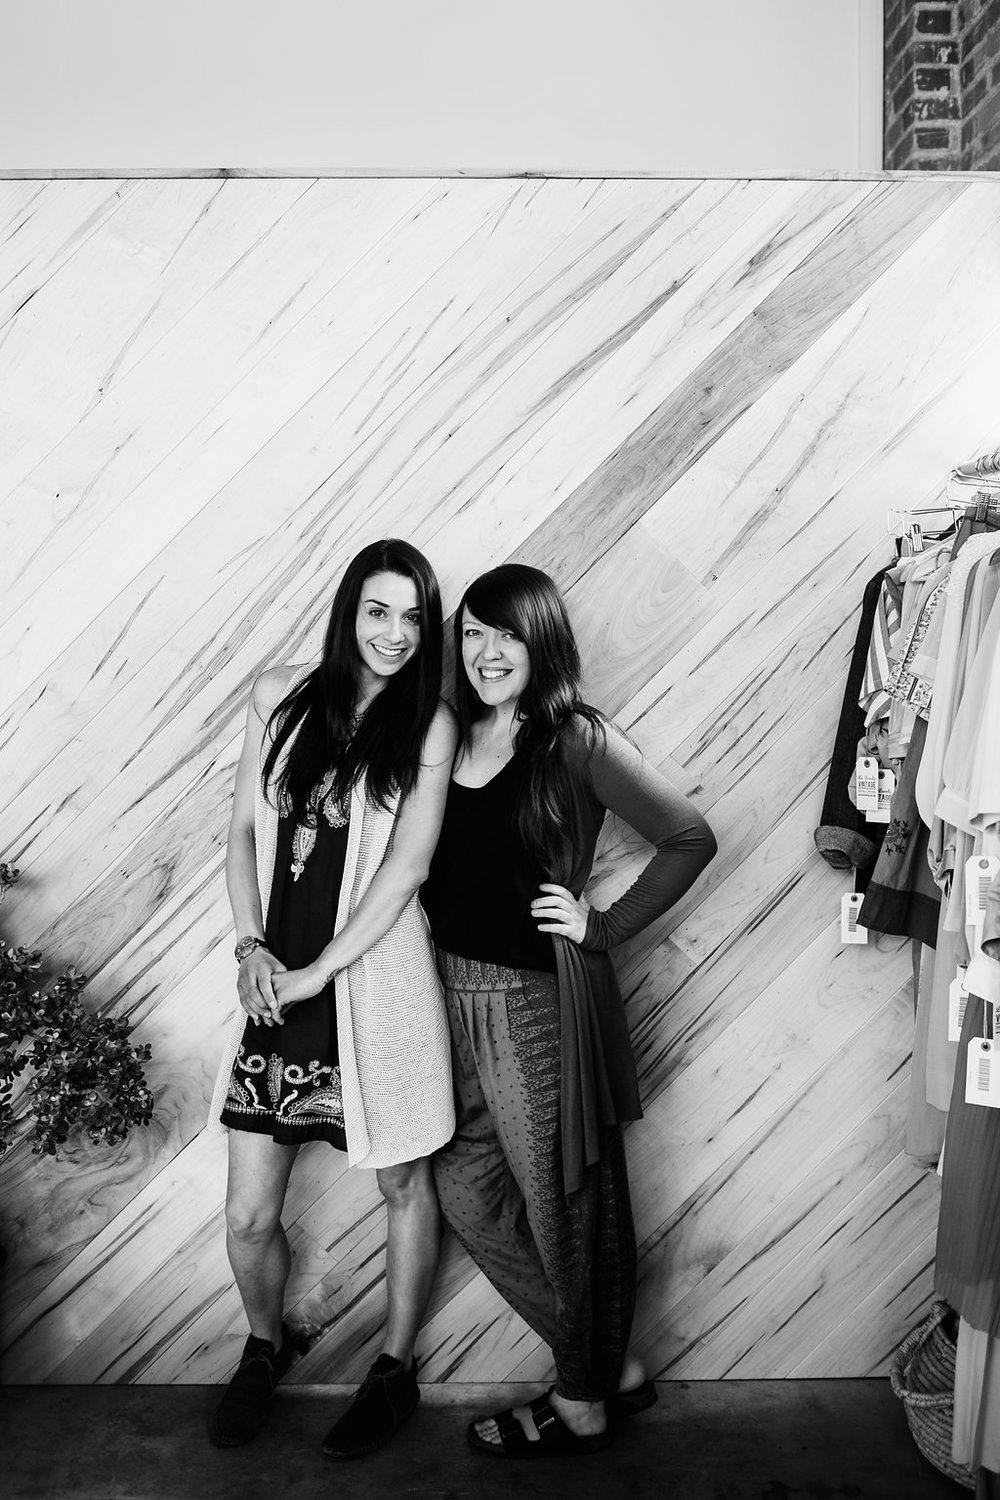 Tara of La Lovely Vintage and Brandee of Judith & Joe